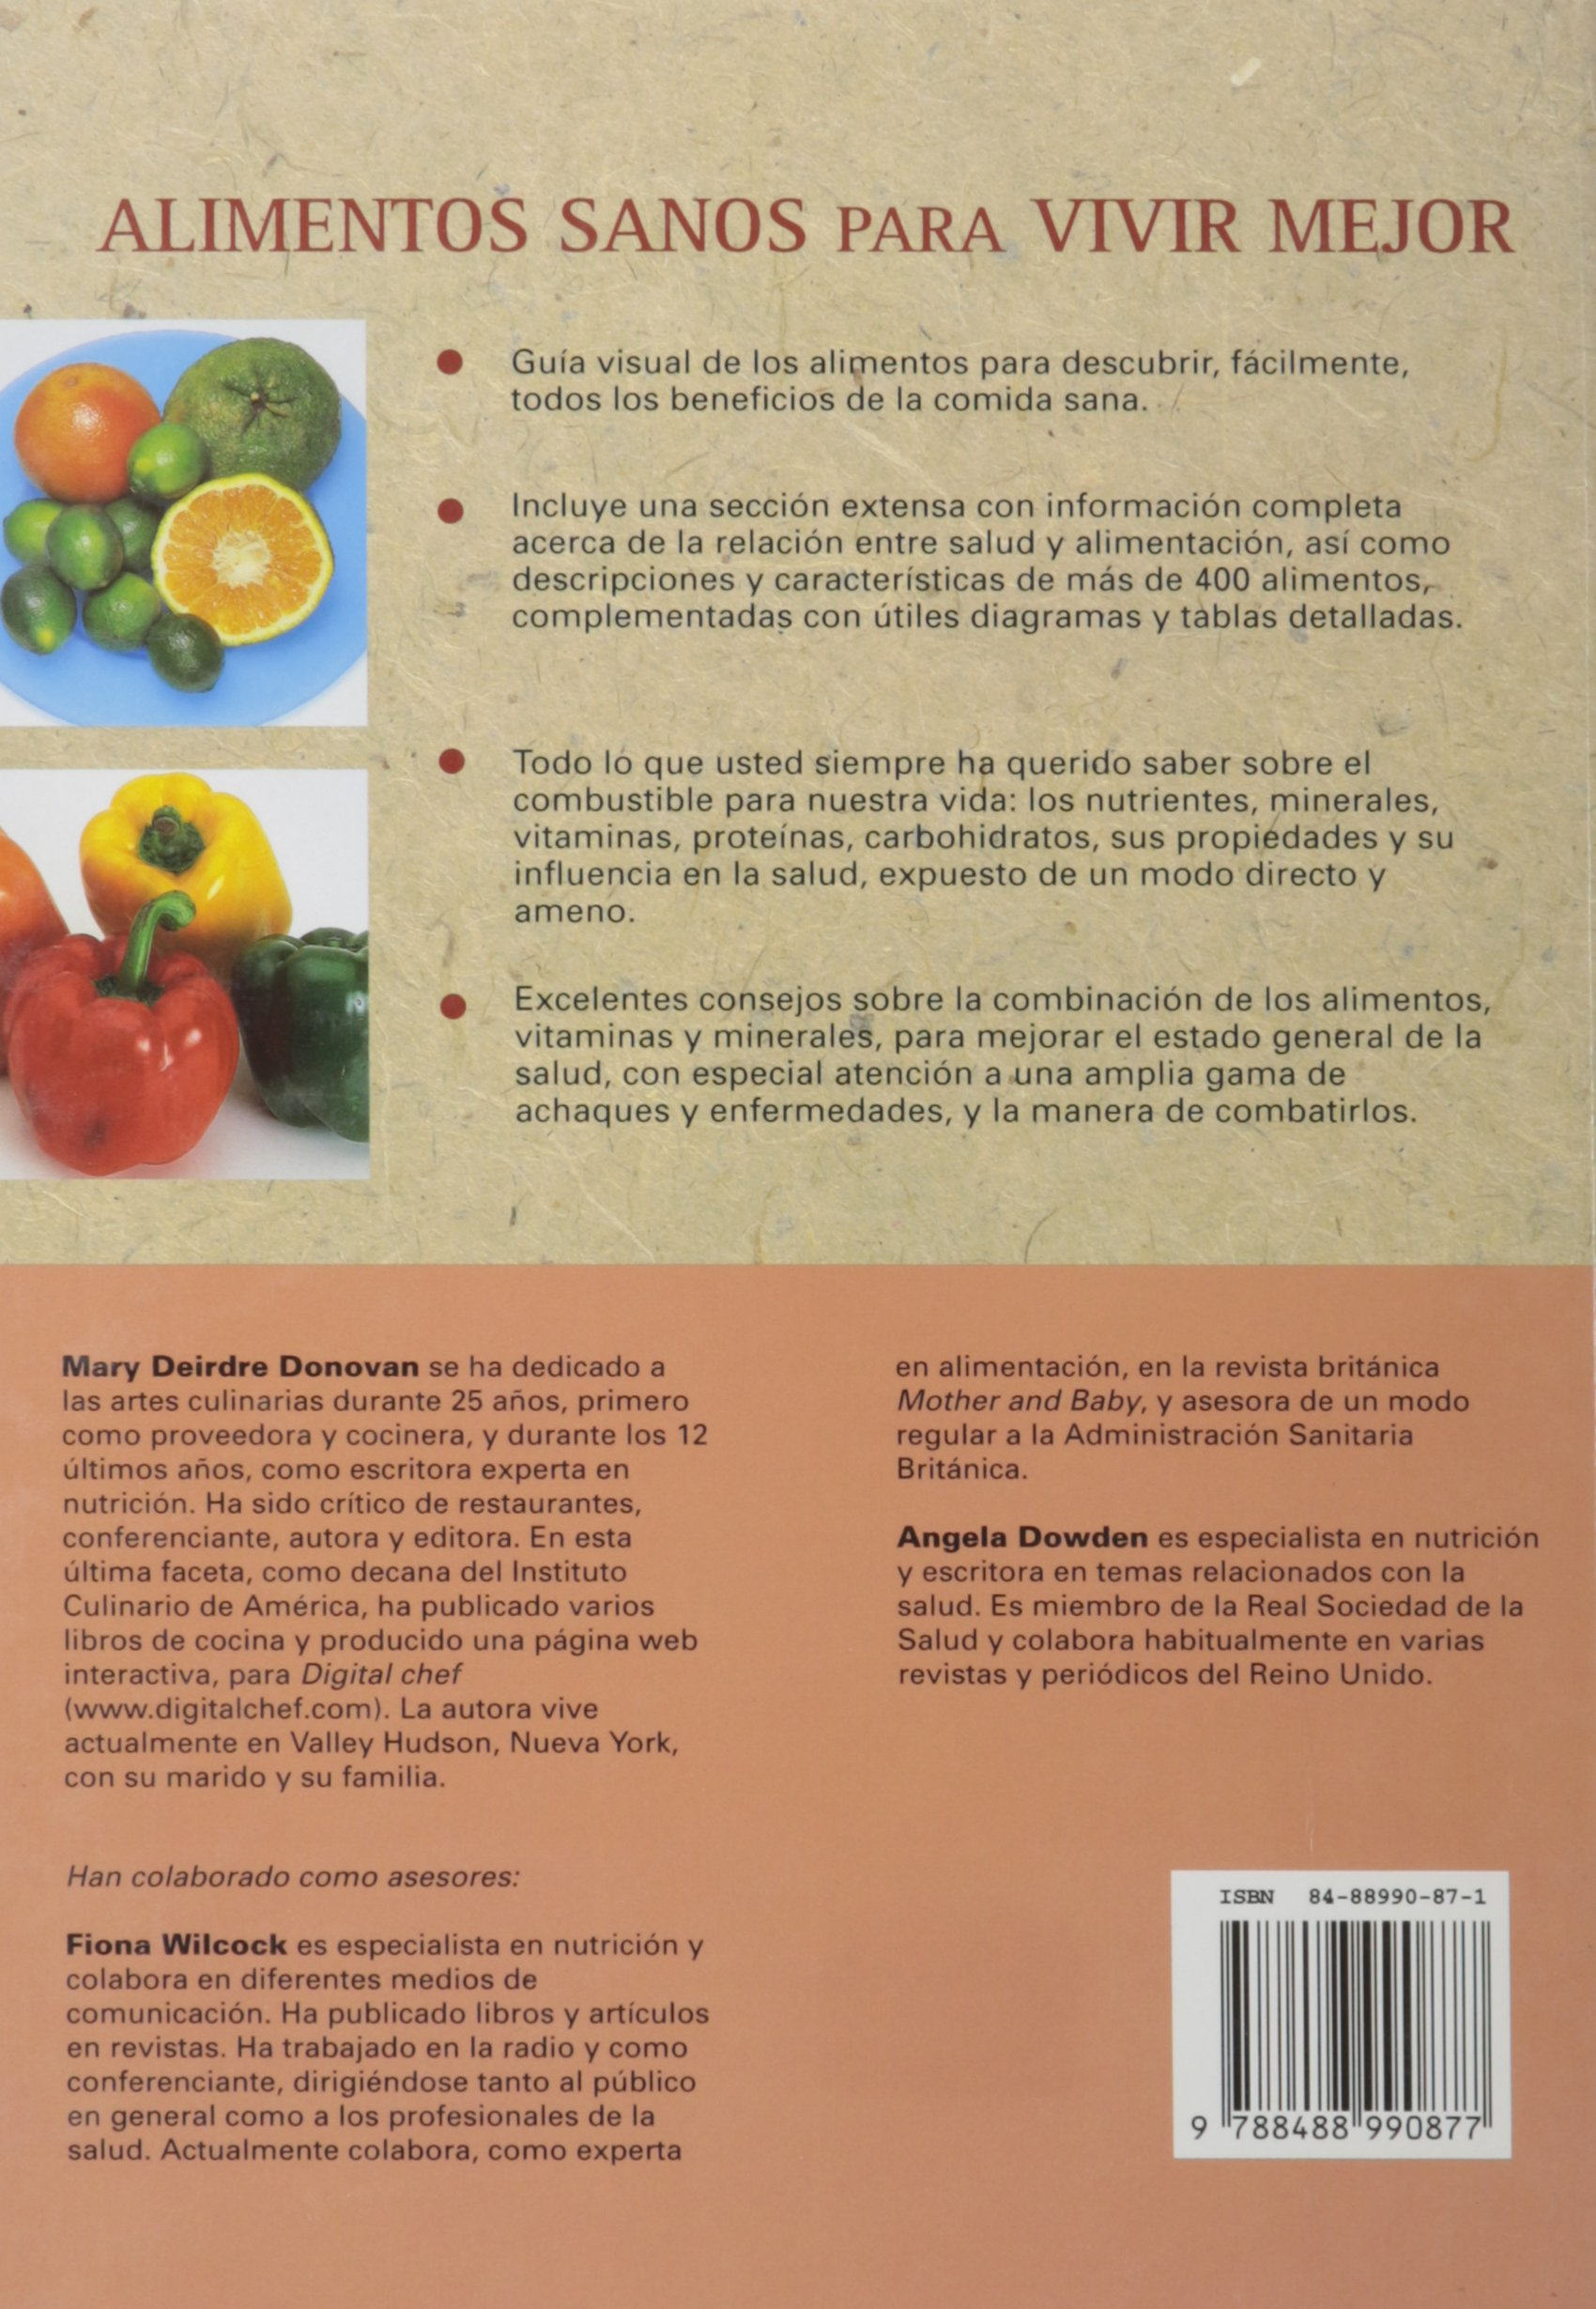 Alimentos Sanos Para Vivir Mejor (Spanish Edition): Mary Deirdre Donovan: 9788488990877: Amazon.com: Books